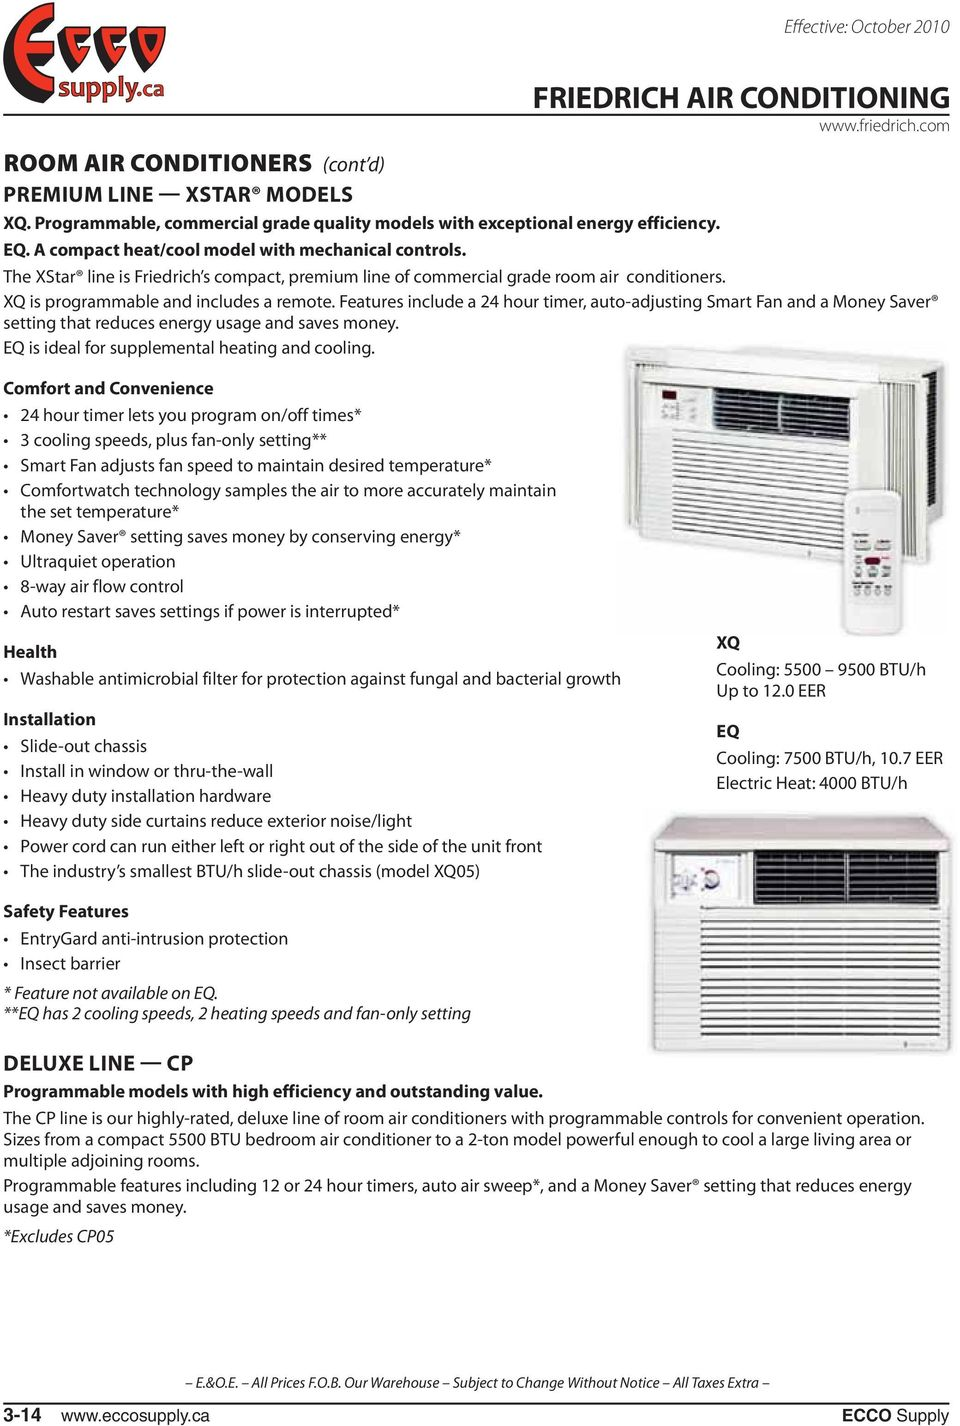 Thermostat Friedrich Air Conditioning Pdf Picturesque Www Wiring Diagram Features Include A Hour Timer Auto Adjusting Smart Fan And Money Saver 960x1426